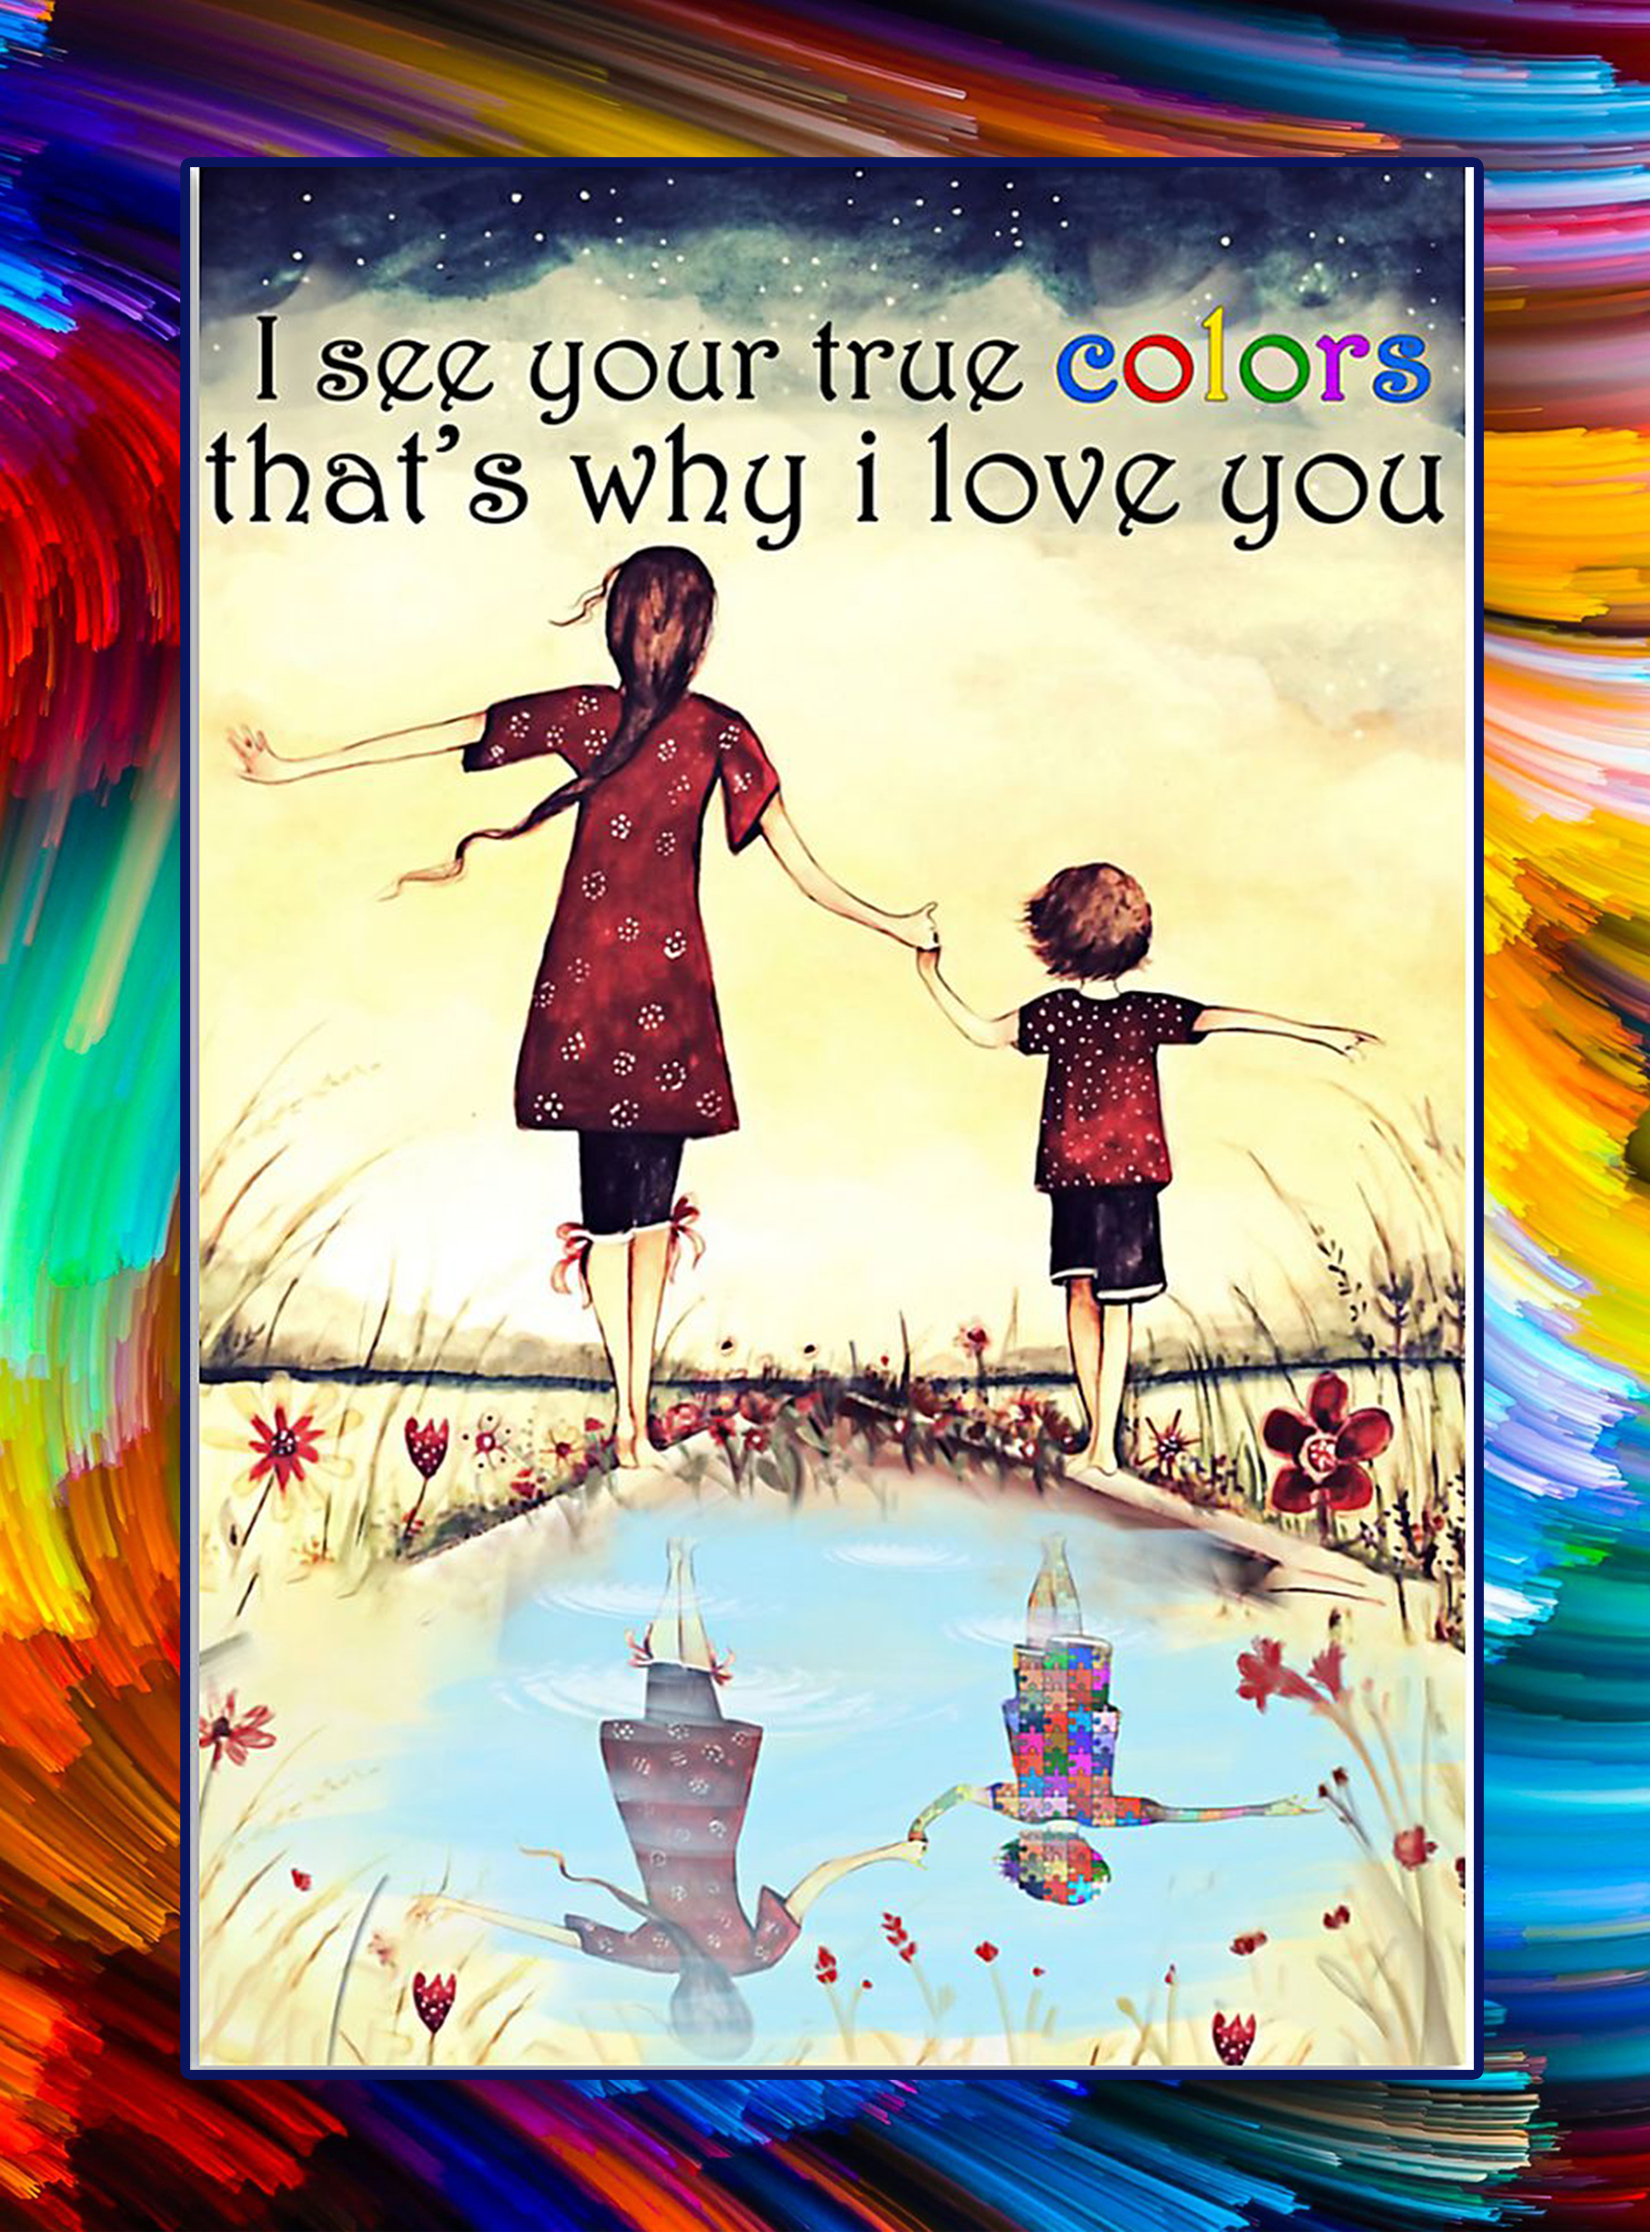 Autism I see your true colors that's why i love you poster - A2Autism I see your true colors that's why i love you poster - A2